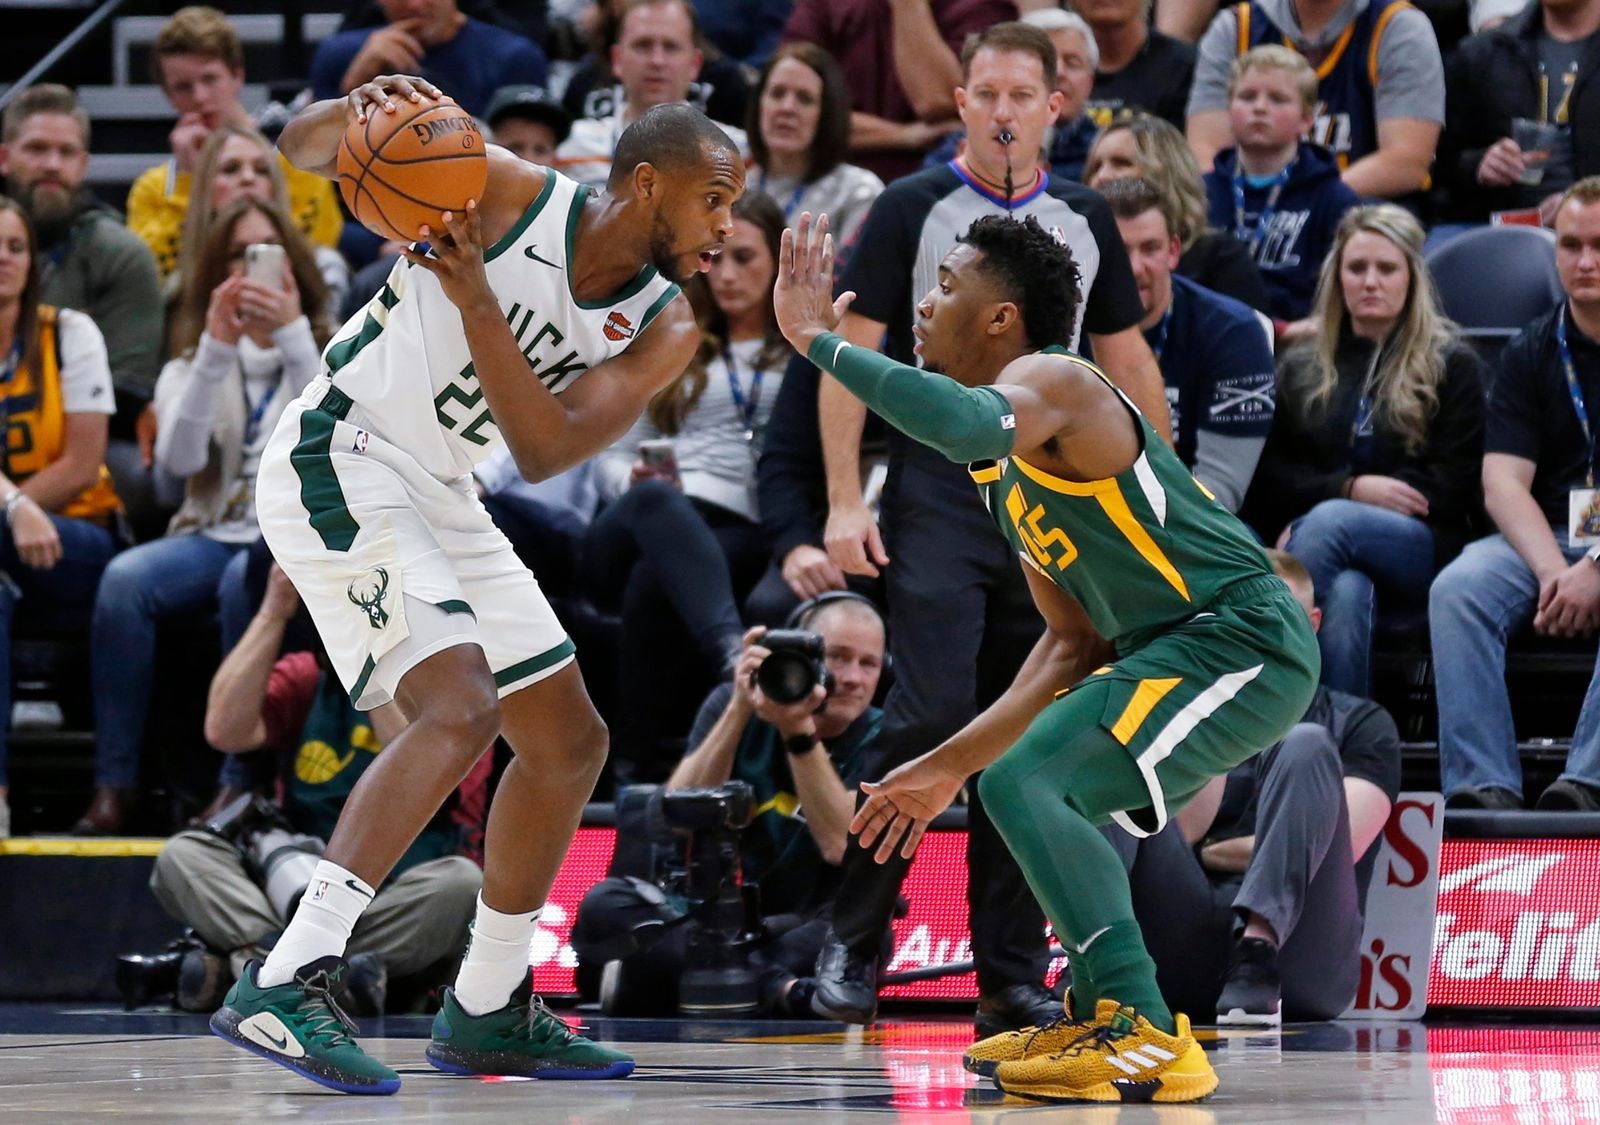 Utah Jazz guard Donovan Mitchell (45) defends against Milwaukee Bucks forward Khris Middleton (22) during the first half of an NBA basketball game Saturday, March 2, 2019, in Salt Lake City. (AP Photo/Rick Bowmer)